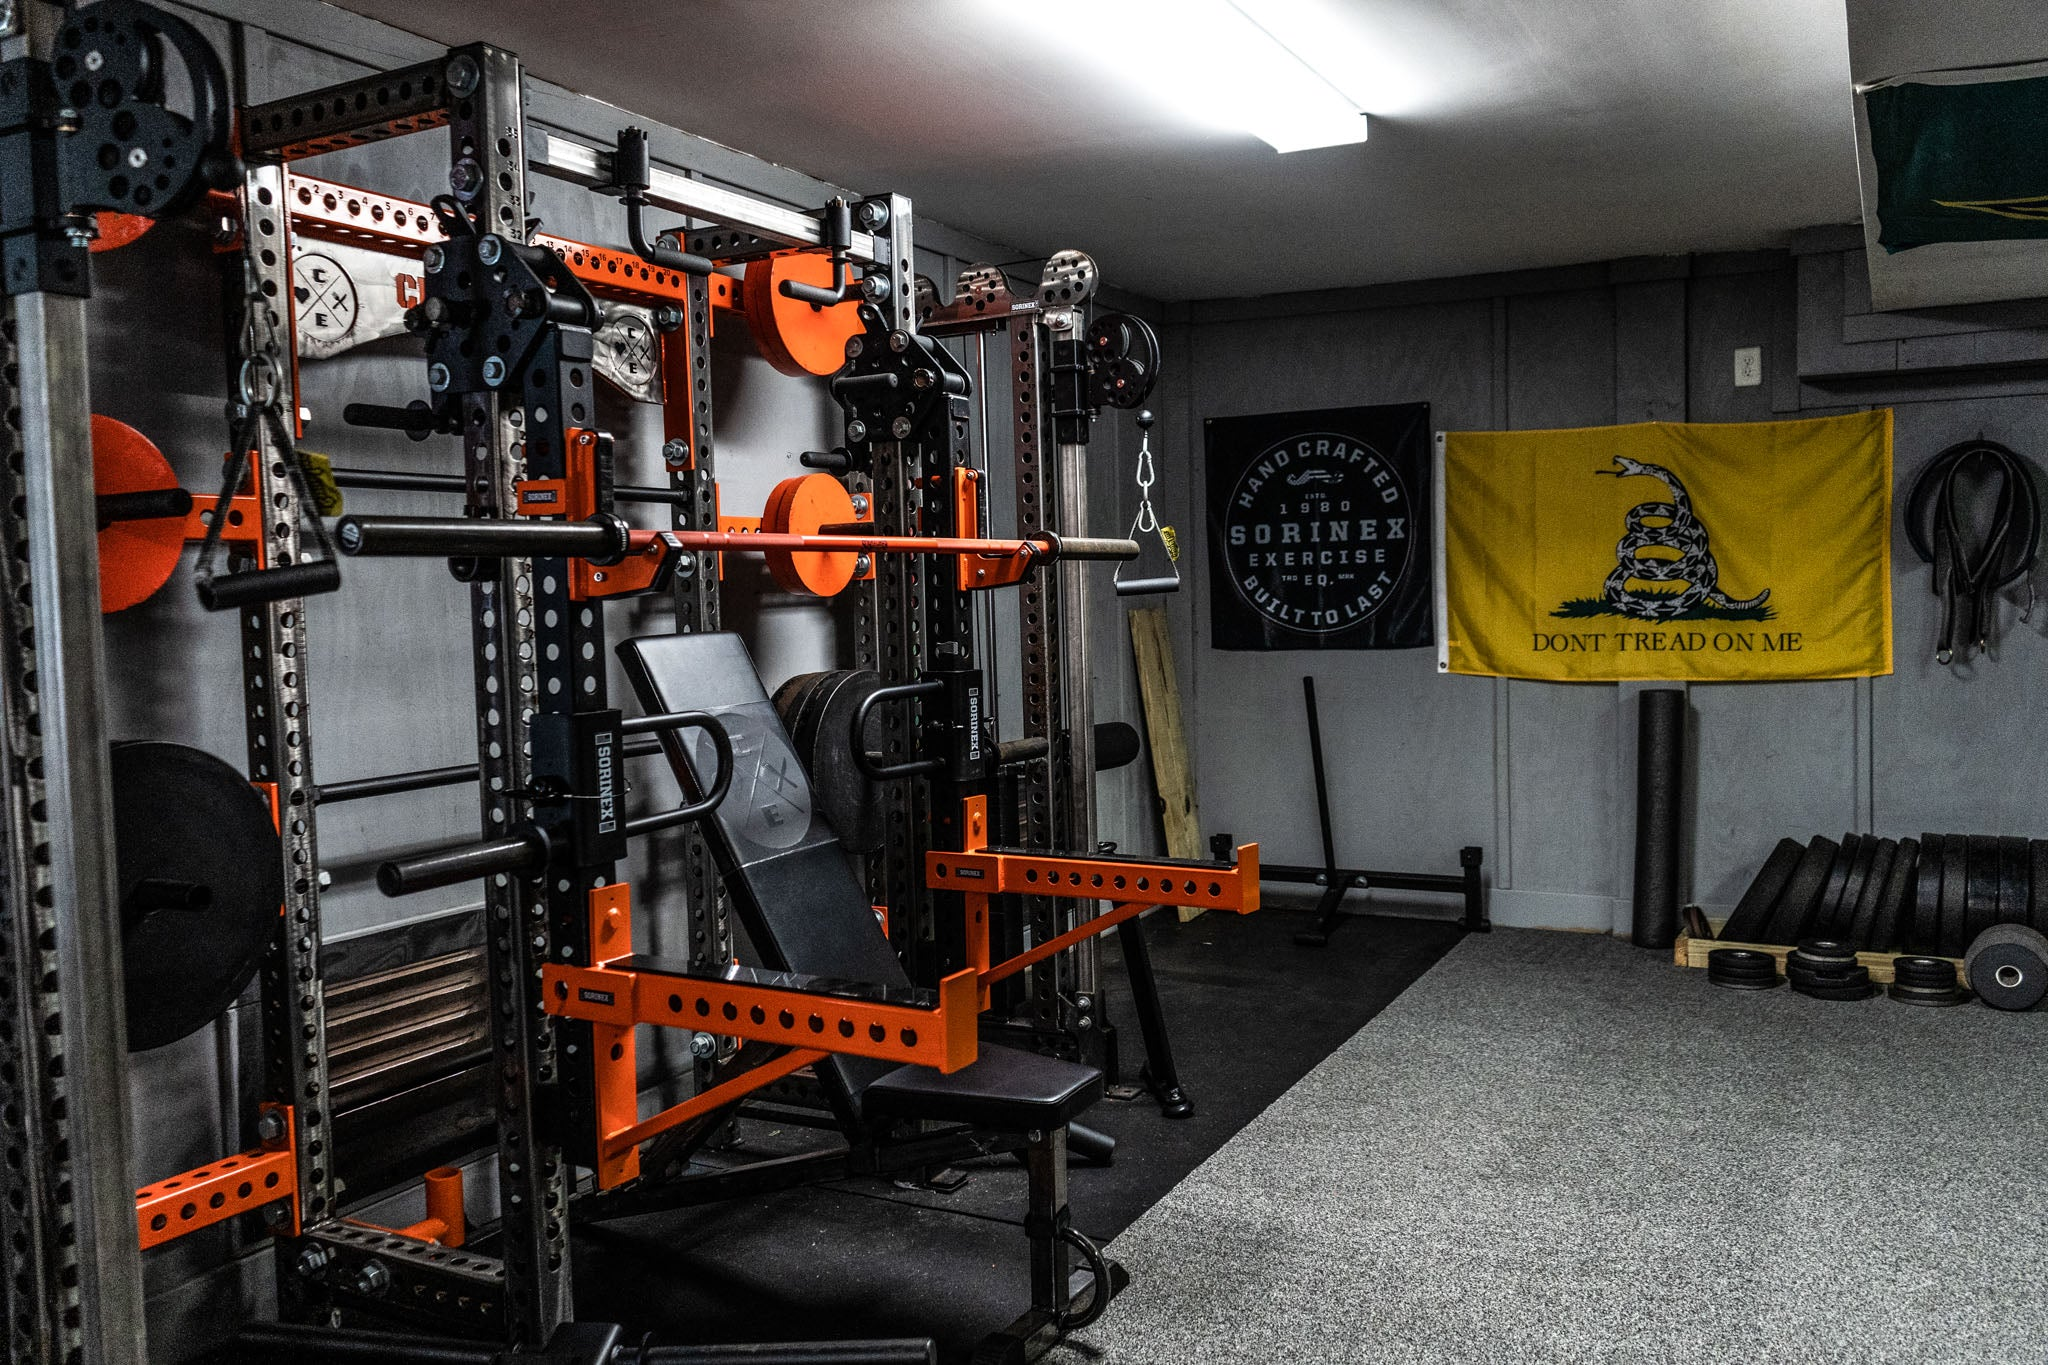 Sorinex Apex Home Gym Racks